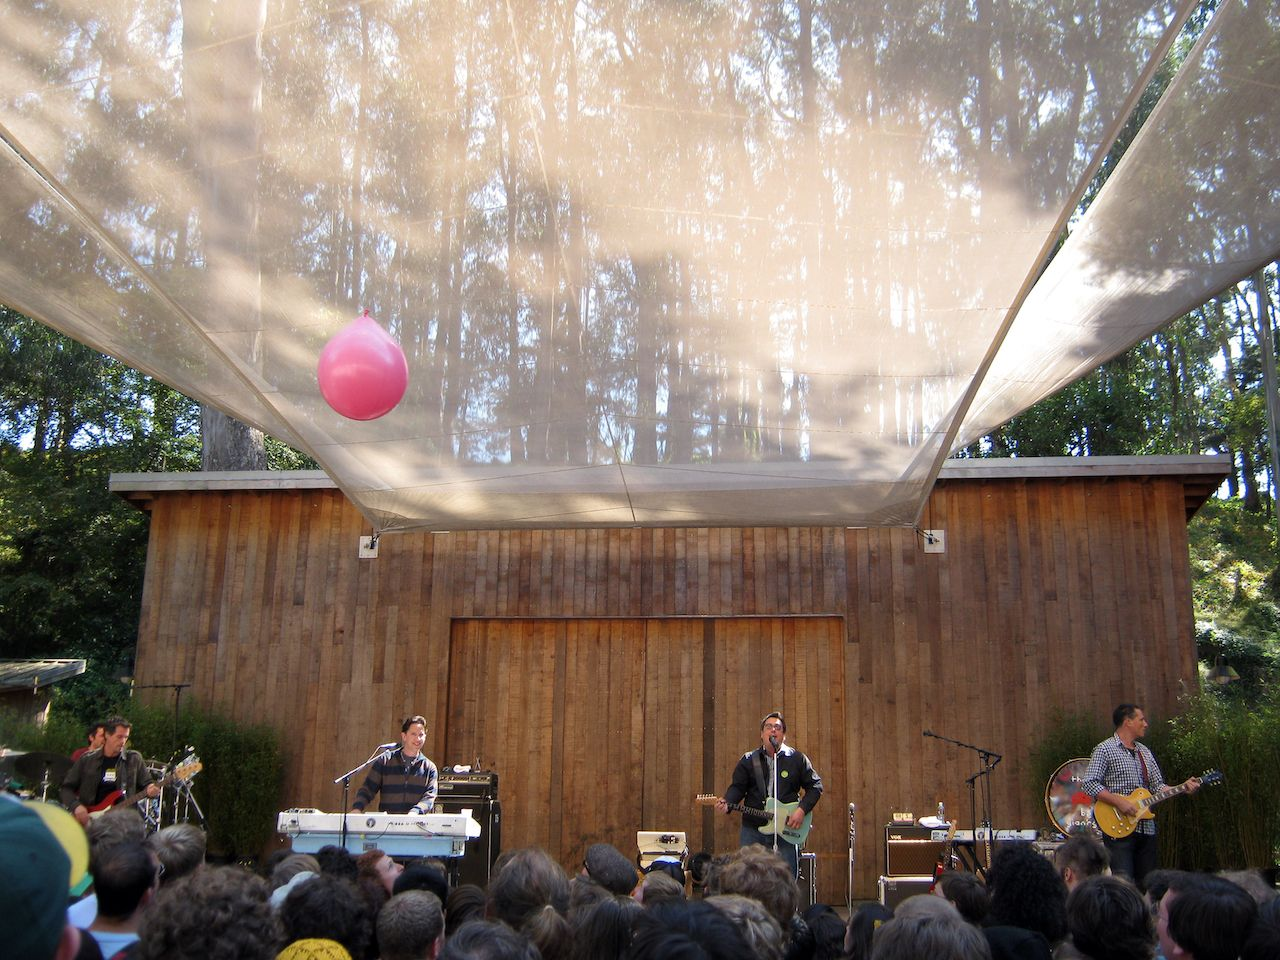 They Might Be Giants performing at SF's Stern Grove Festival